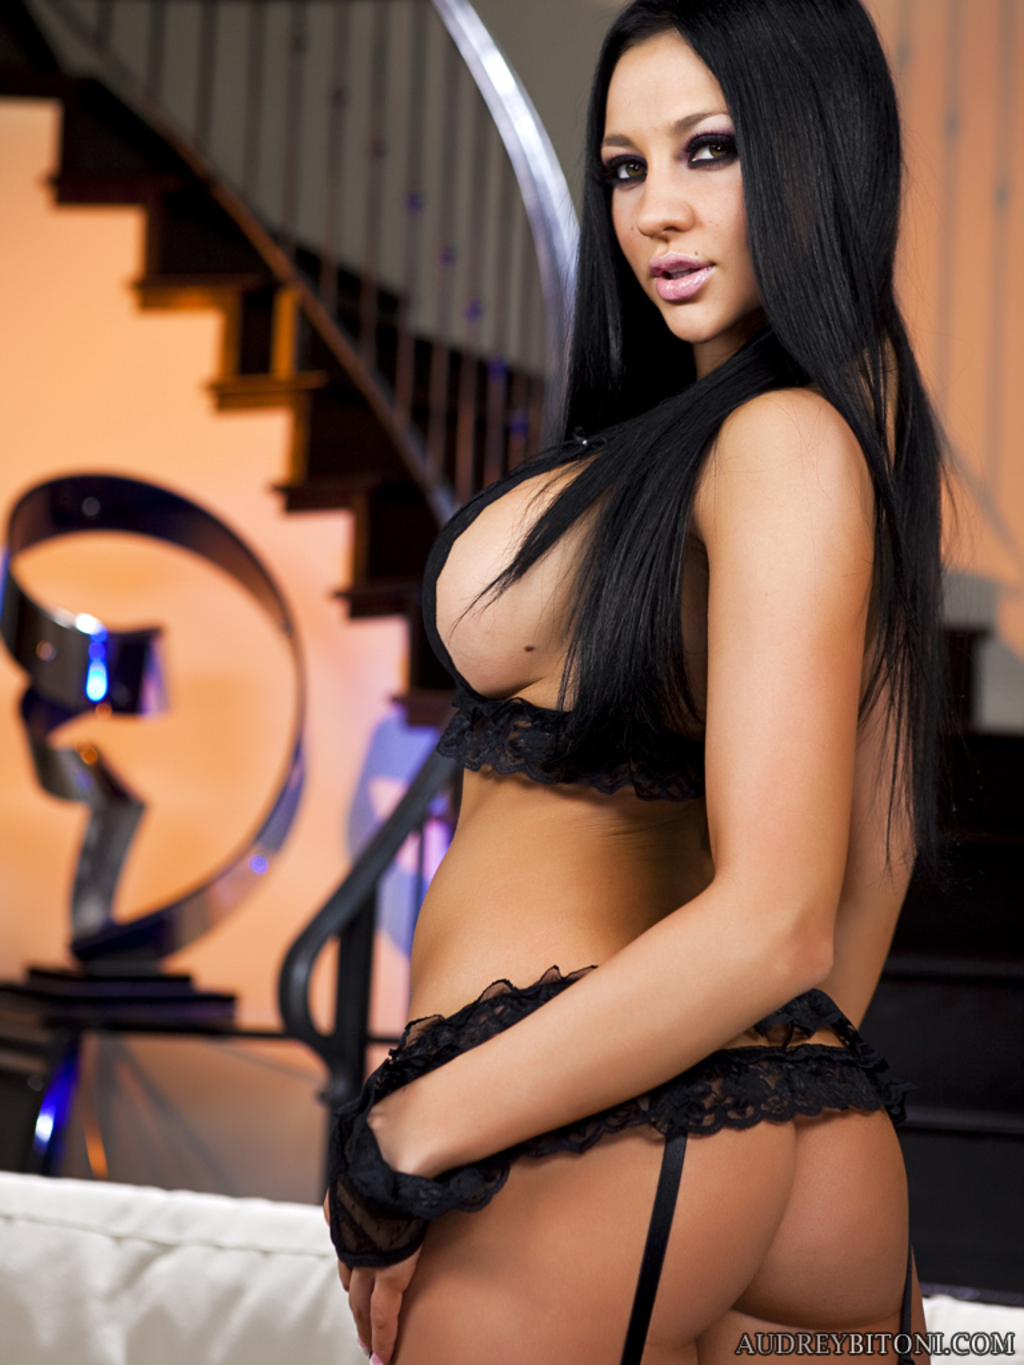 Magnificent Brunette, Audrey Bitoni, Flashes Their Way Dispirited Heavy Confidential With The Addition Of